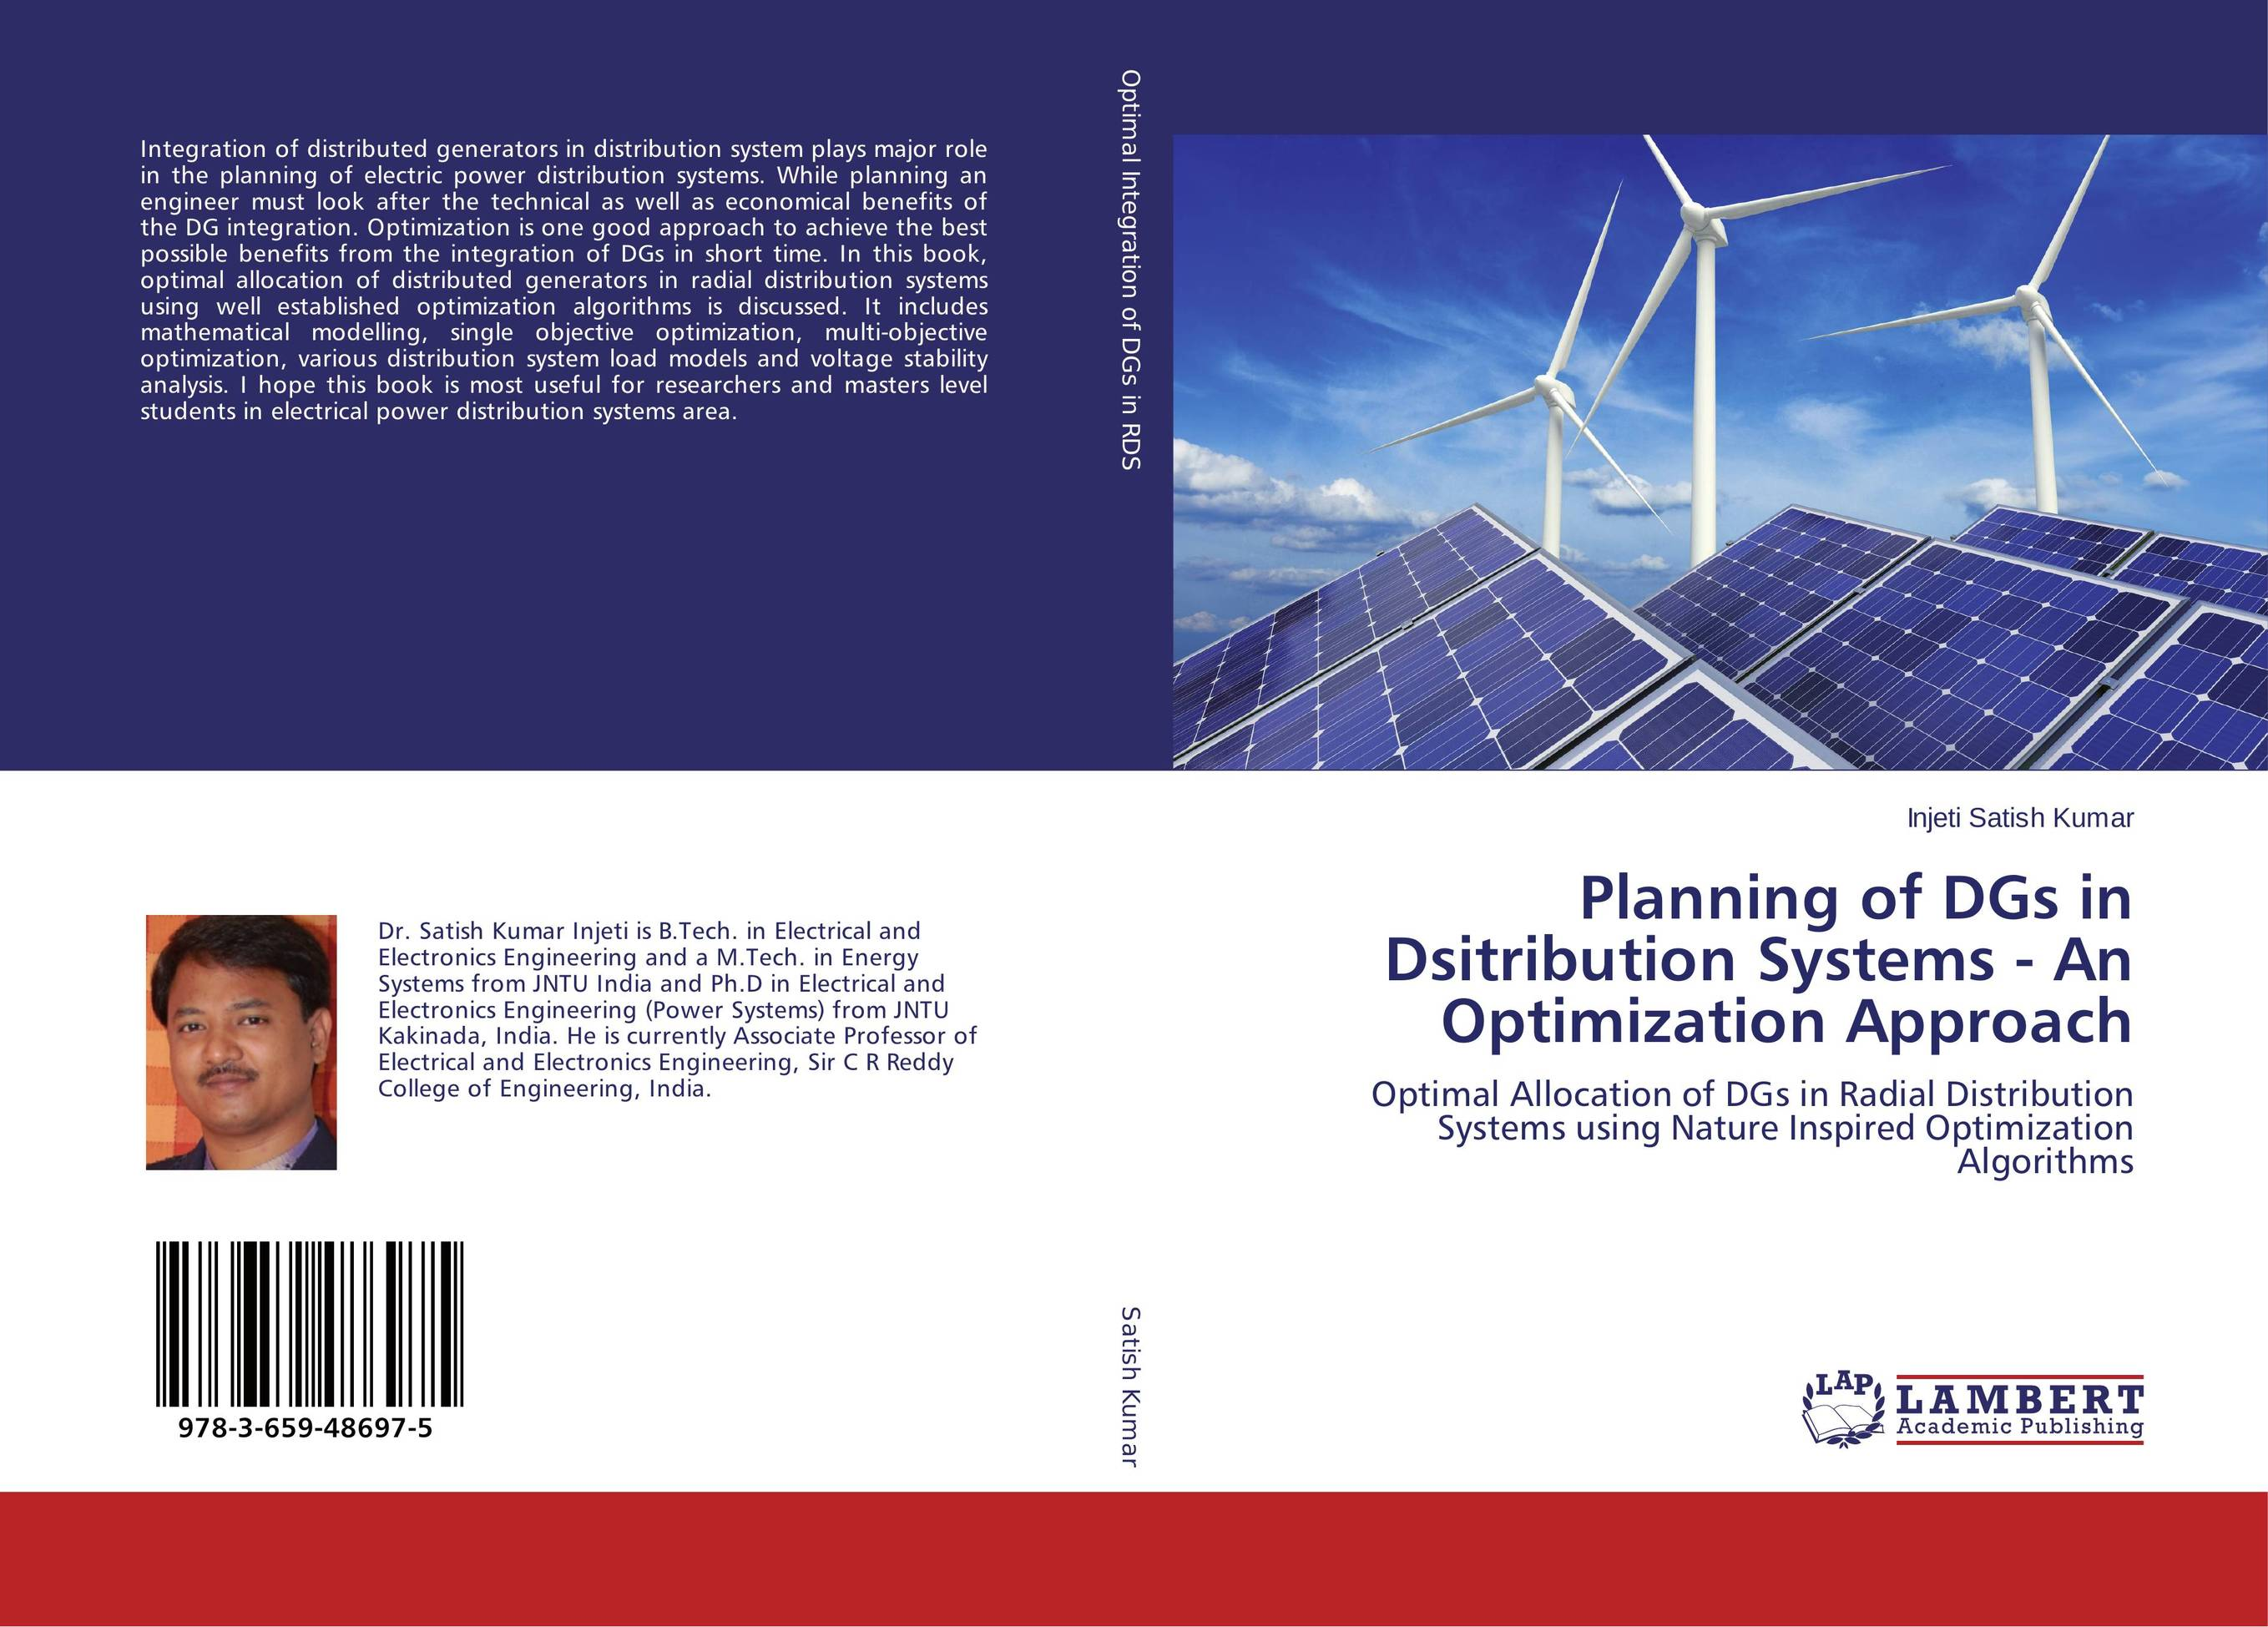 Planning of DGs in Dsitribution Systems - An Optimization Approach